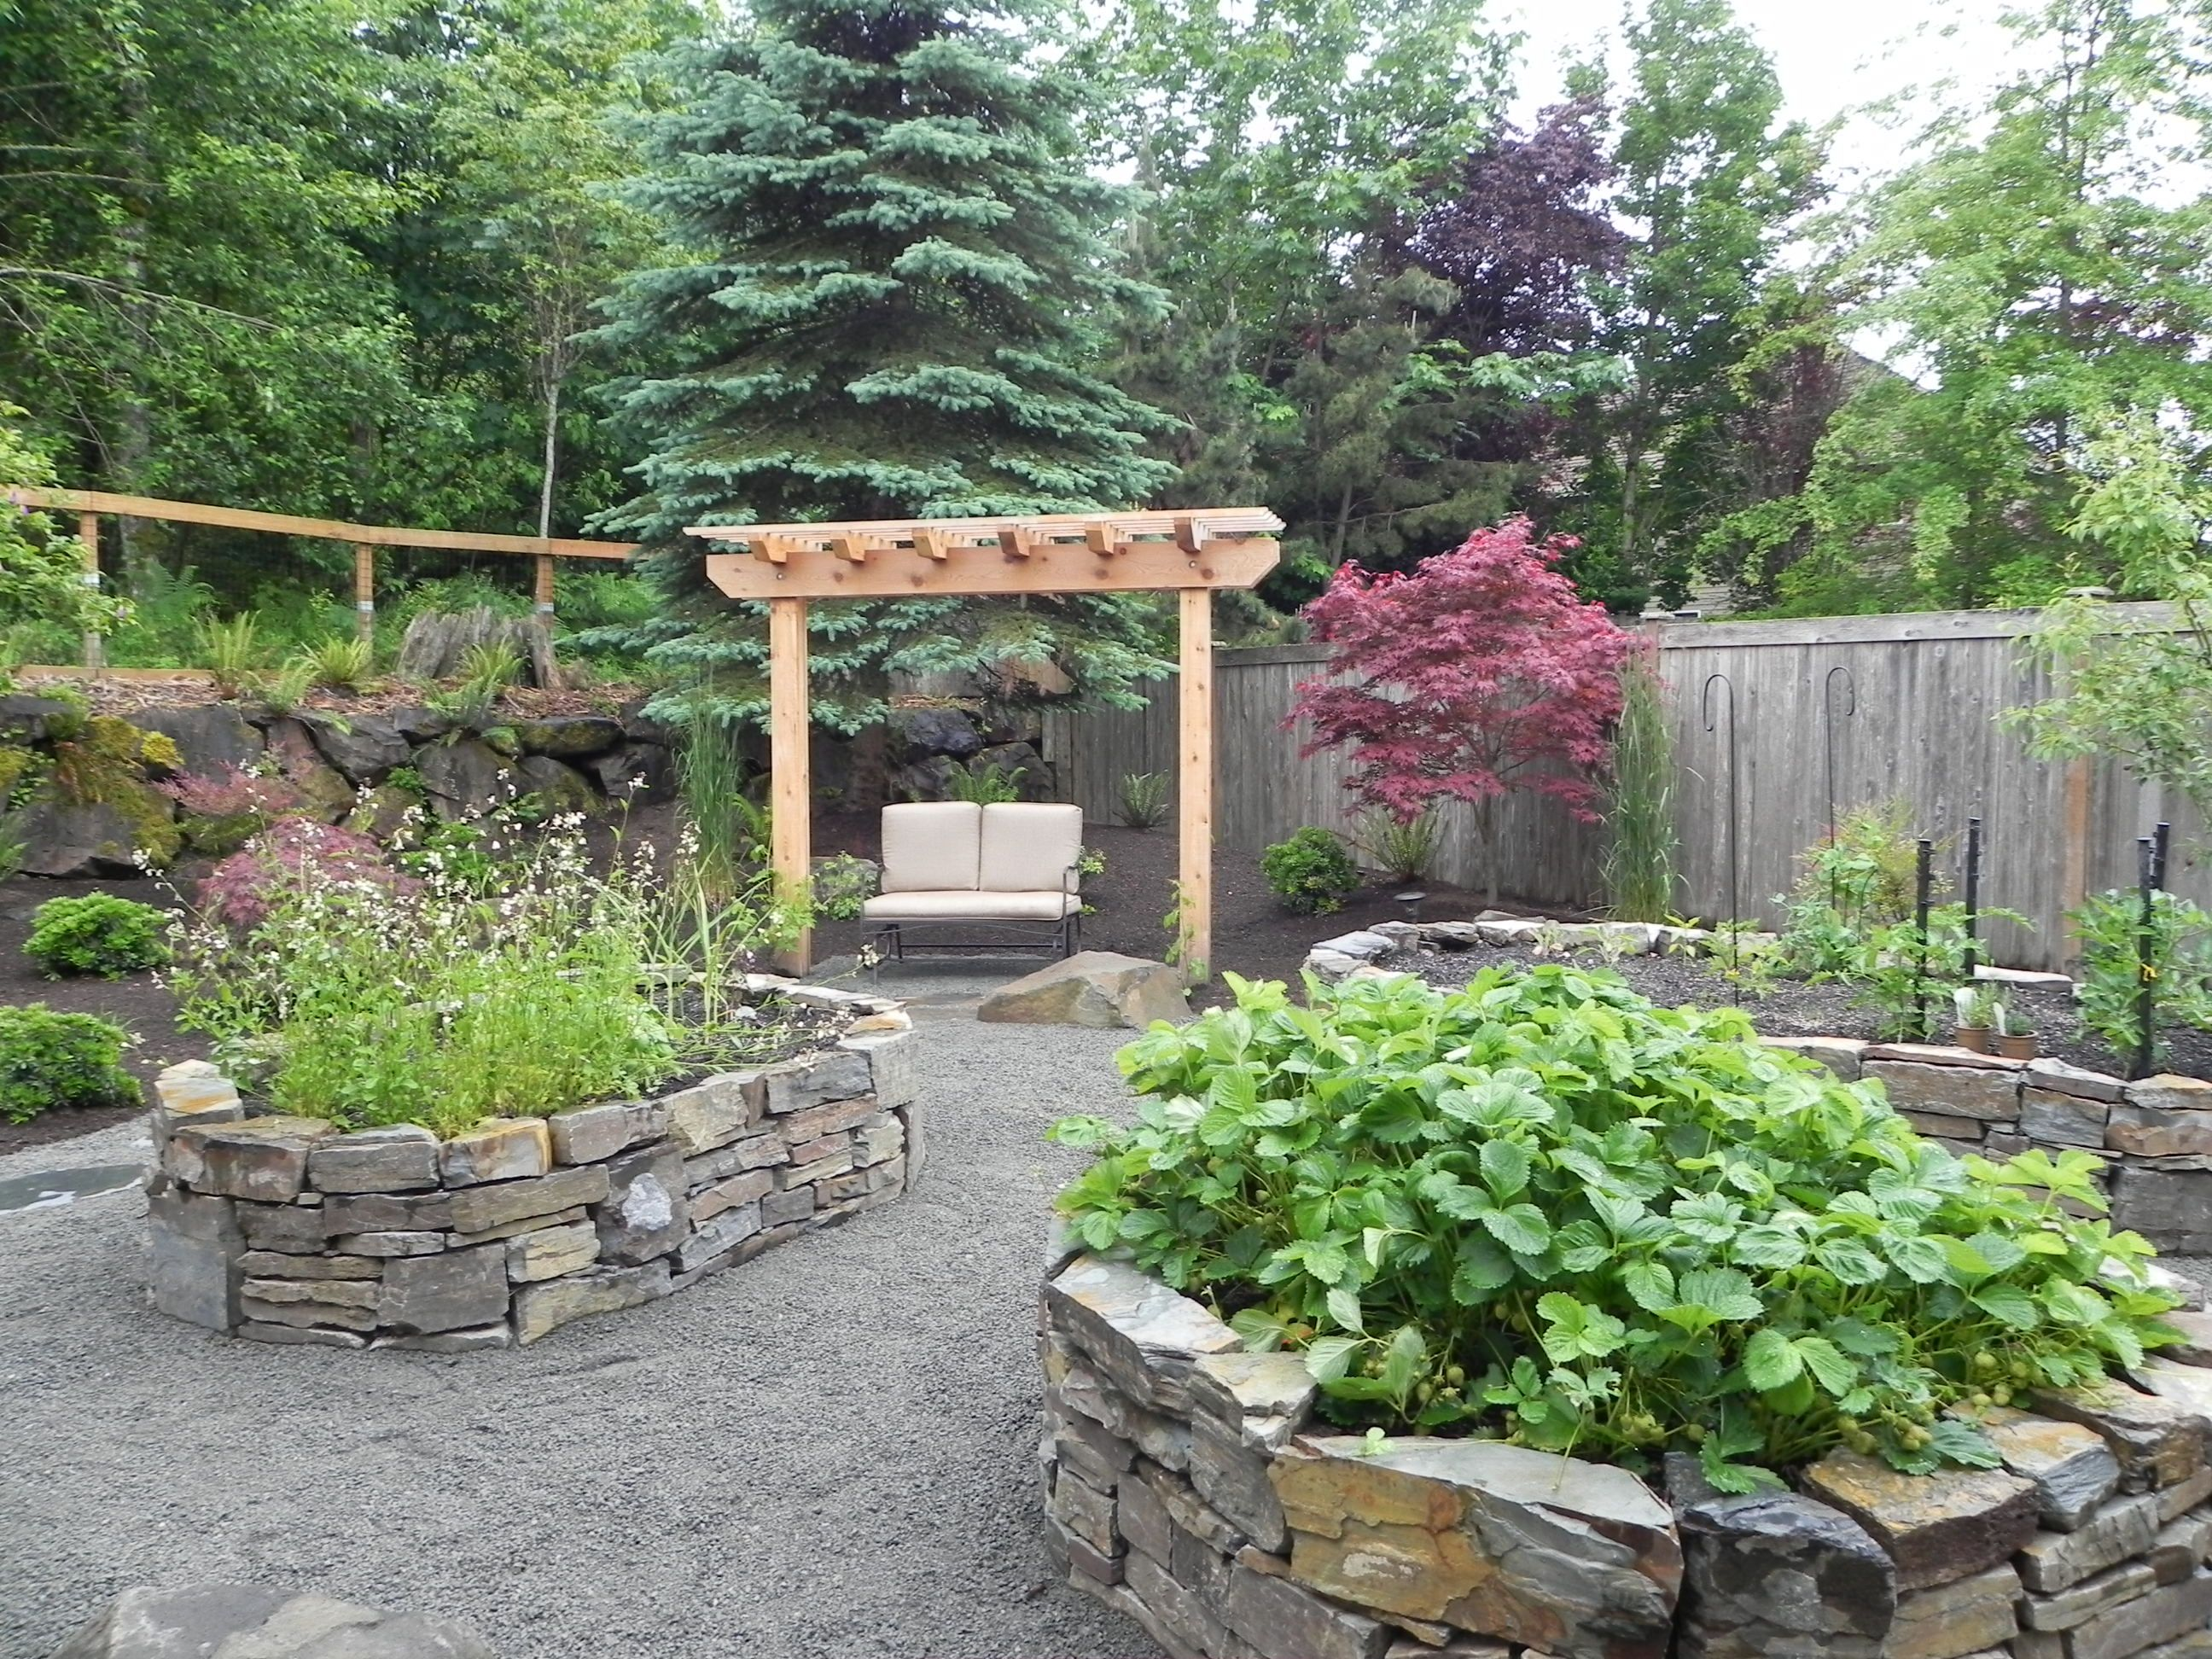 Landscaping Plans For Backyardraised Beds Google Search - raised garden designs plans